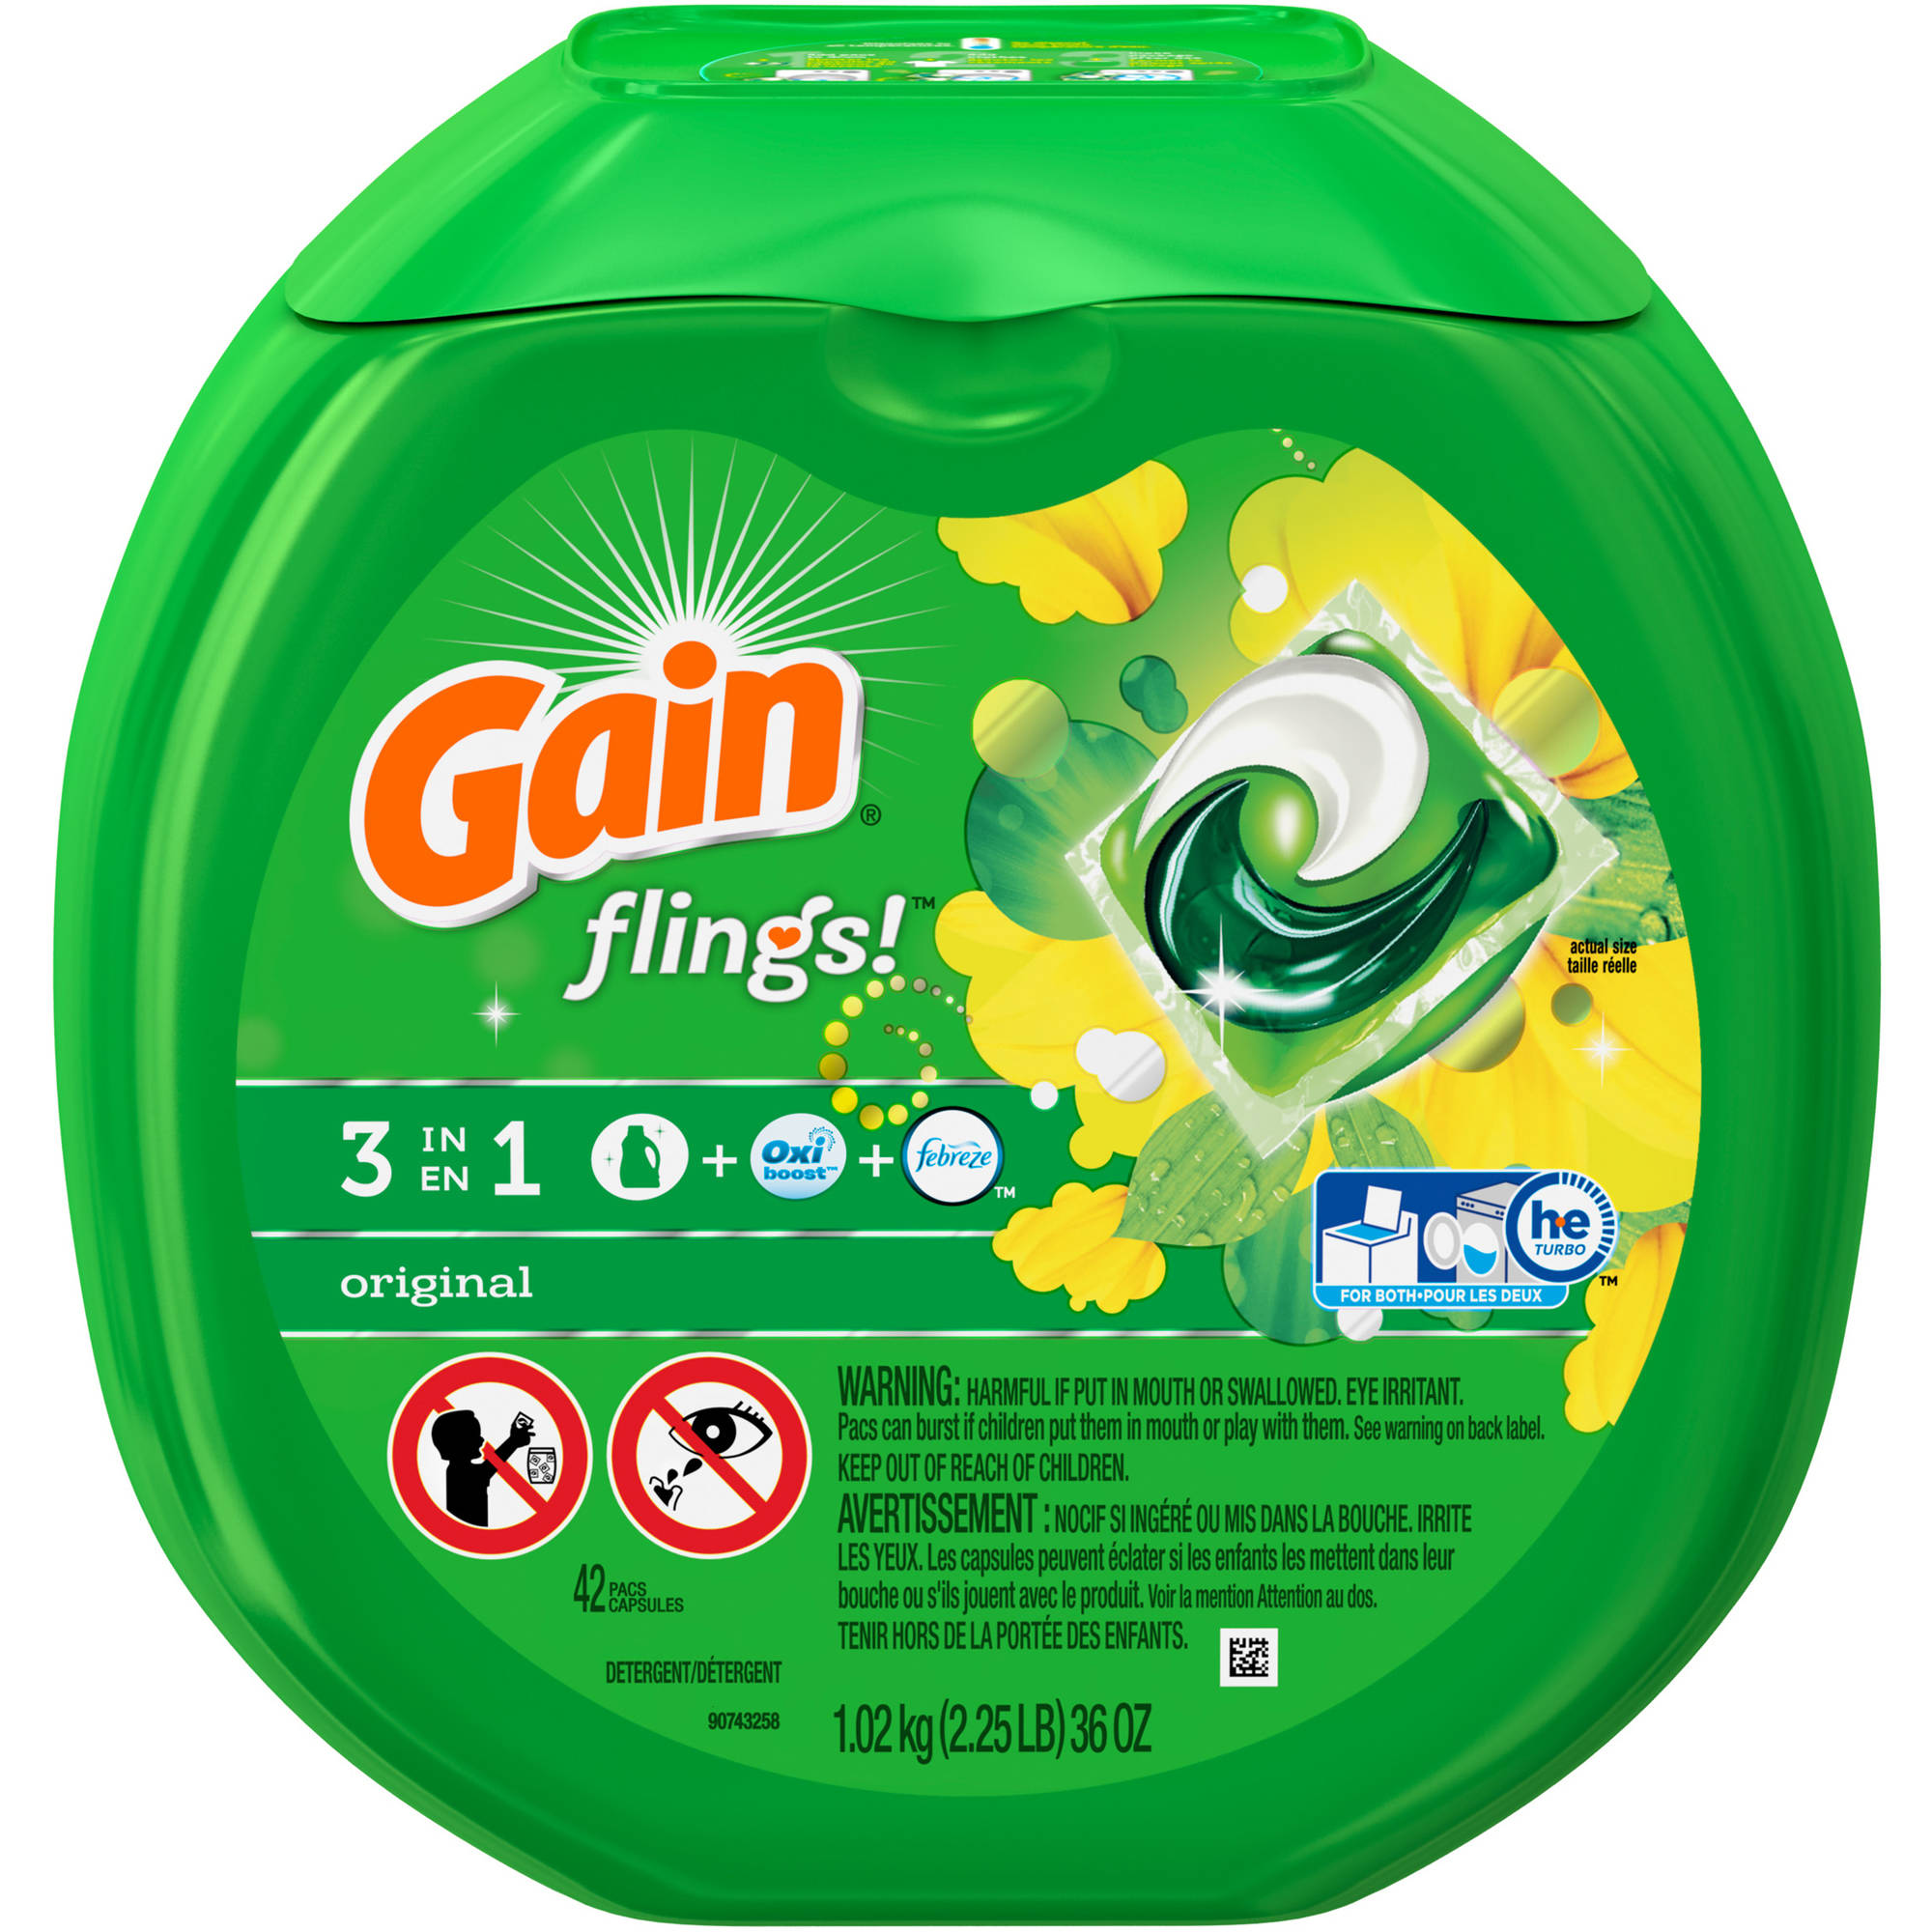 Gain flings! Laundry Detergent Pacs, Original, 42 count